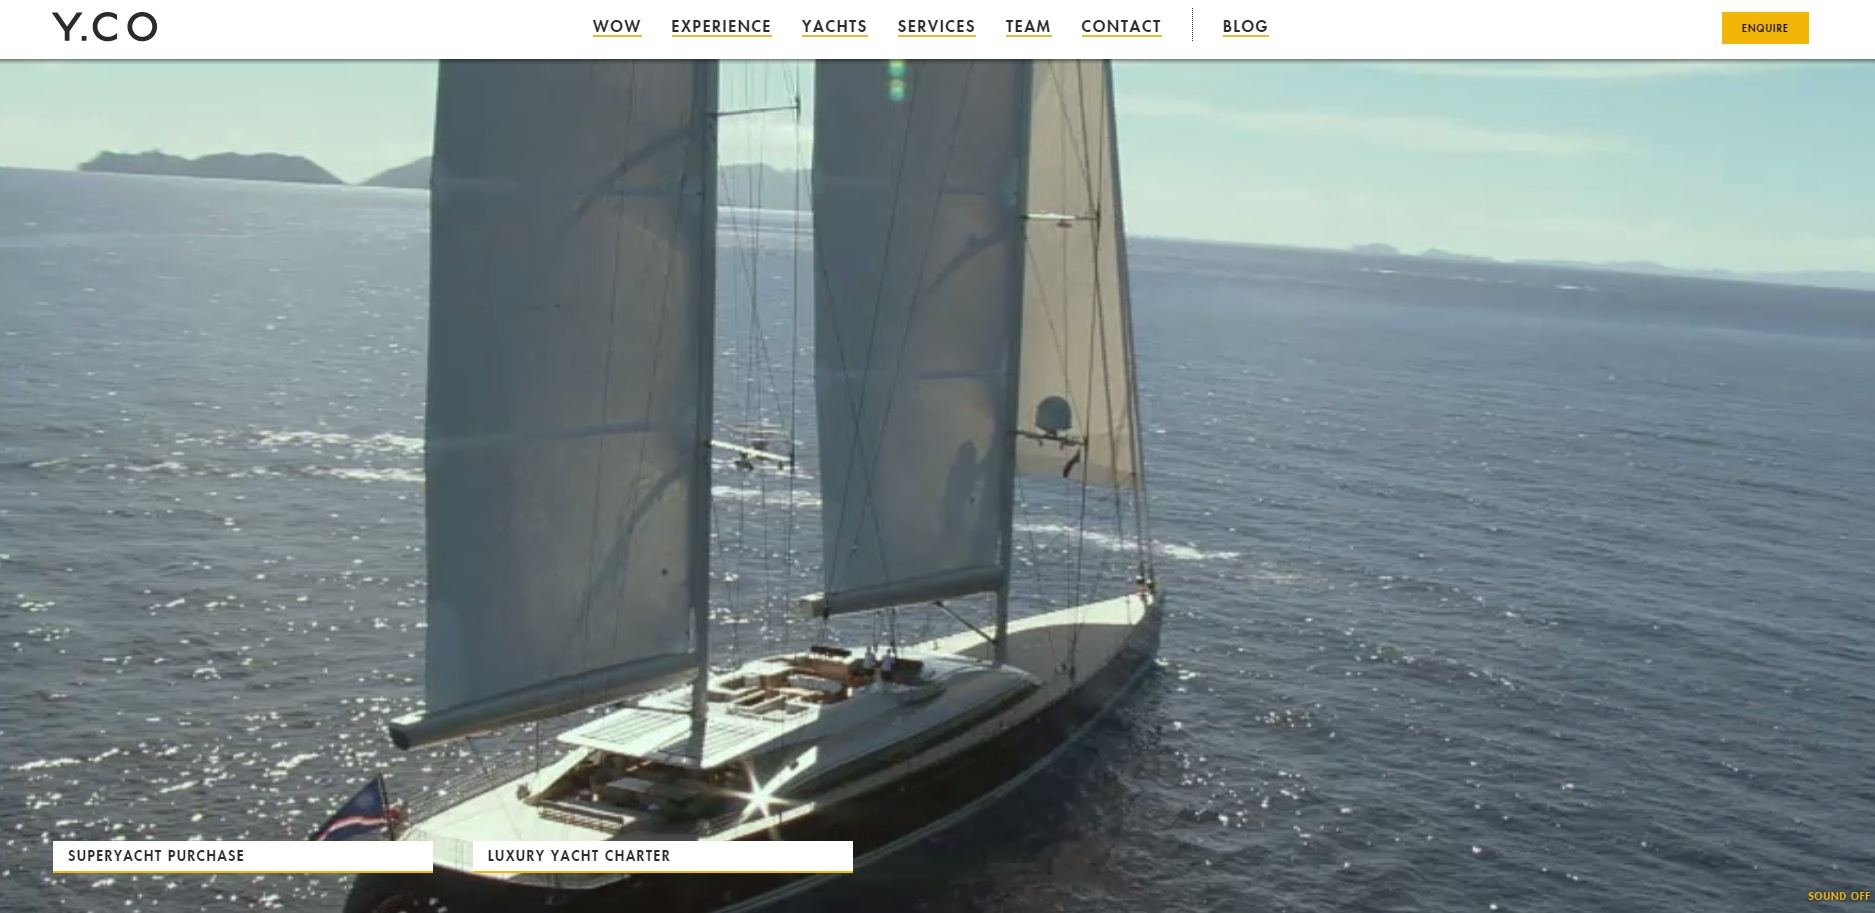 HTML 5 video web design Y.co yachts